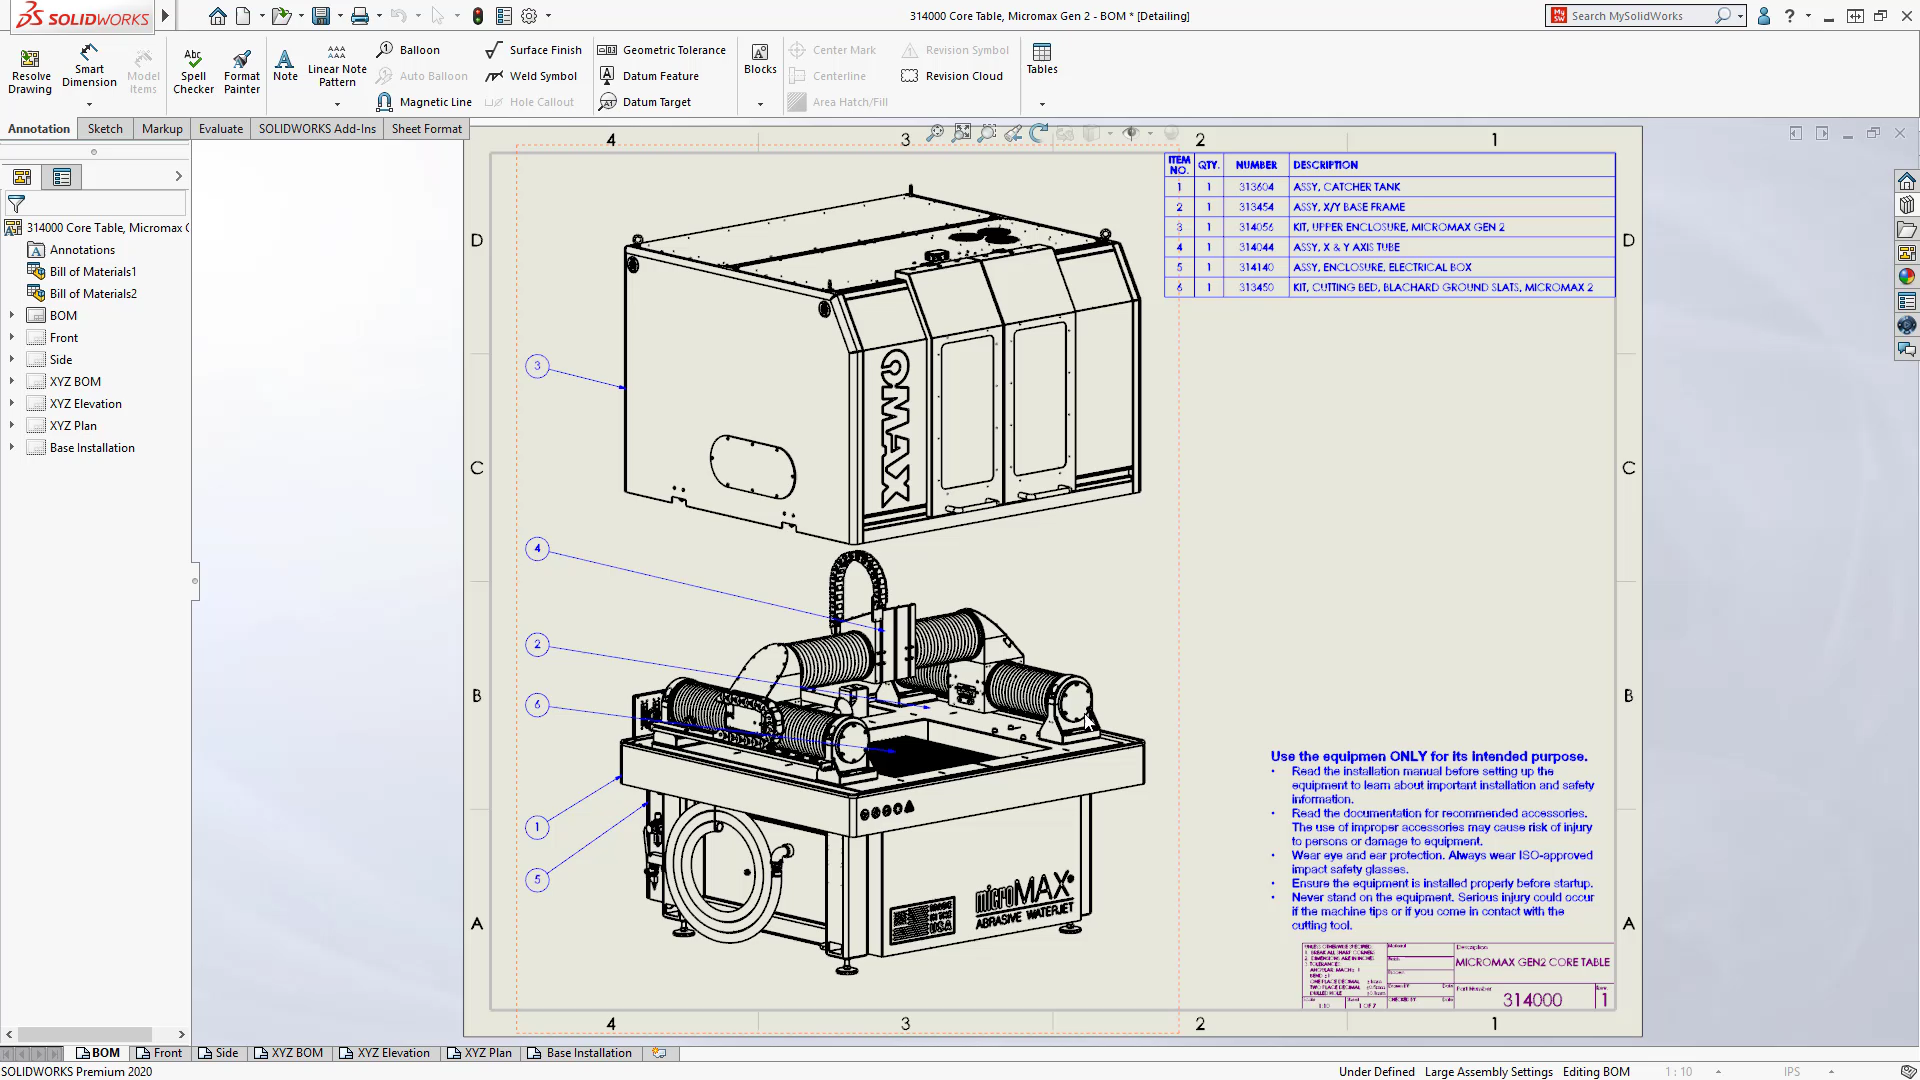 SOLIDWORKS 2020 Beta is Live!